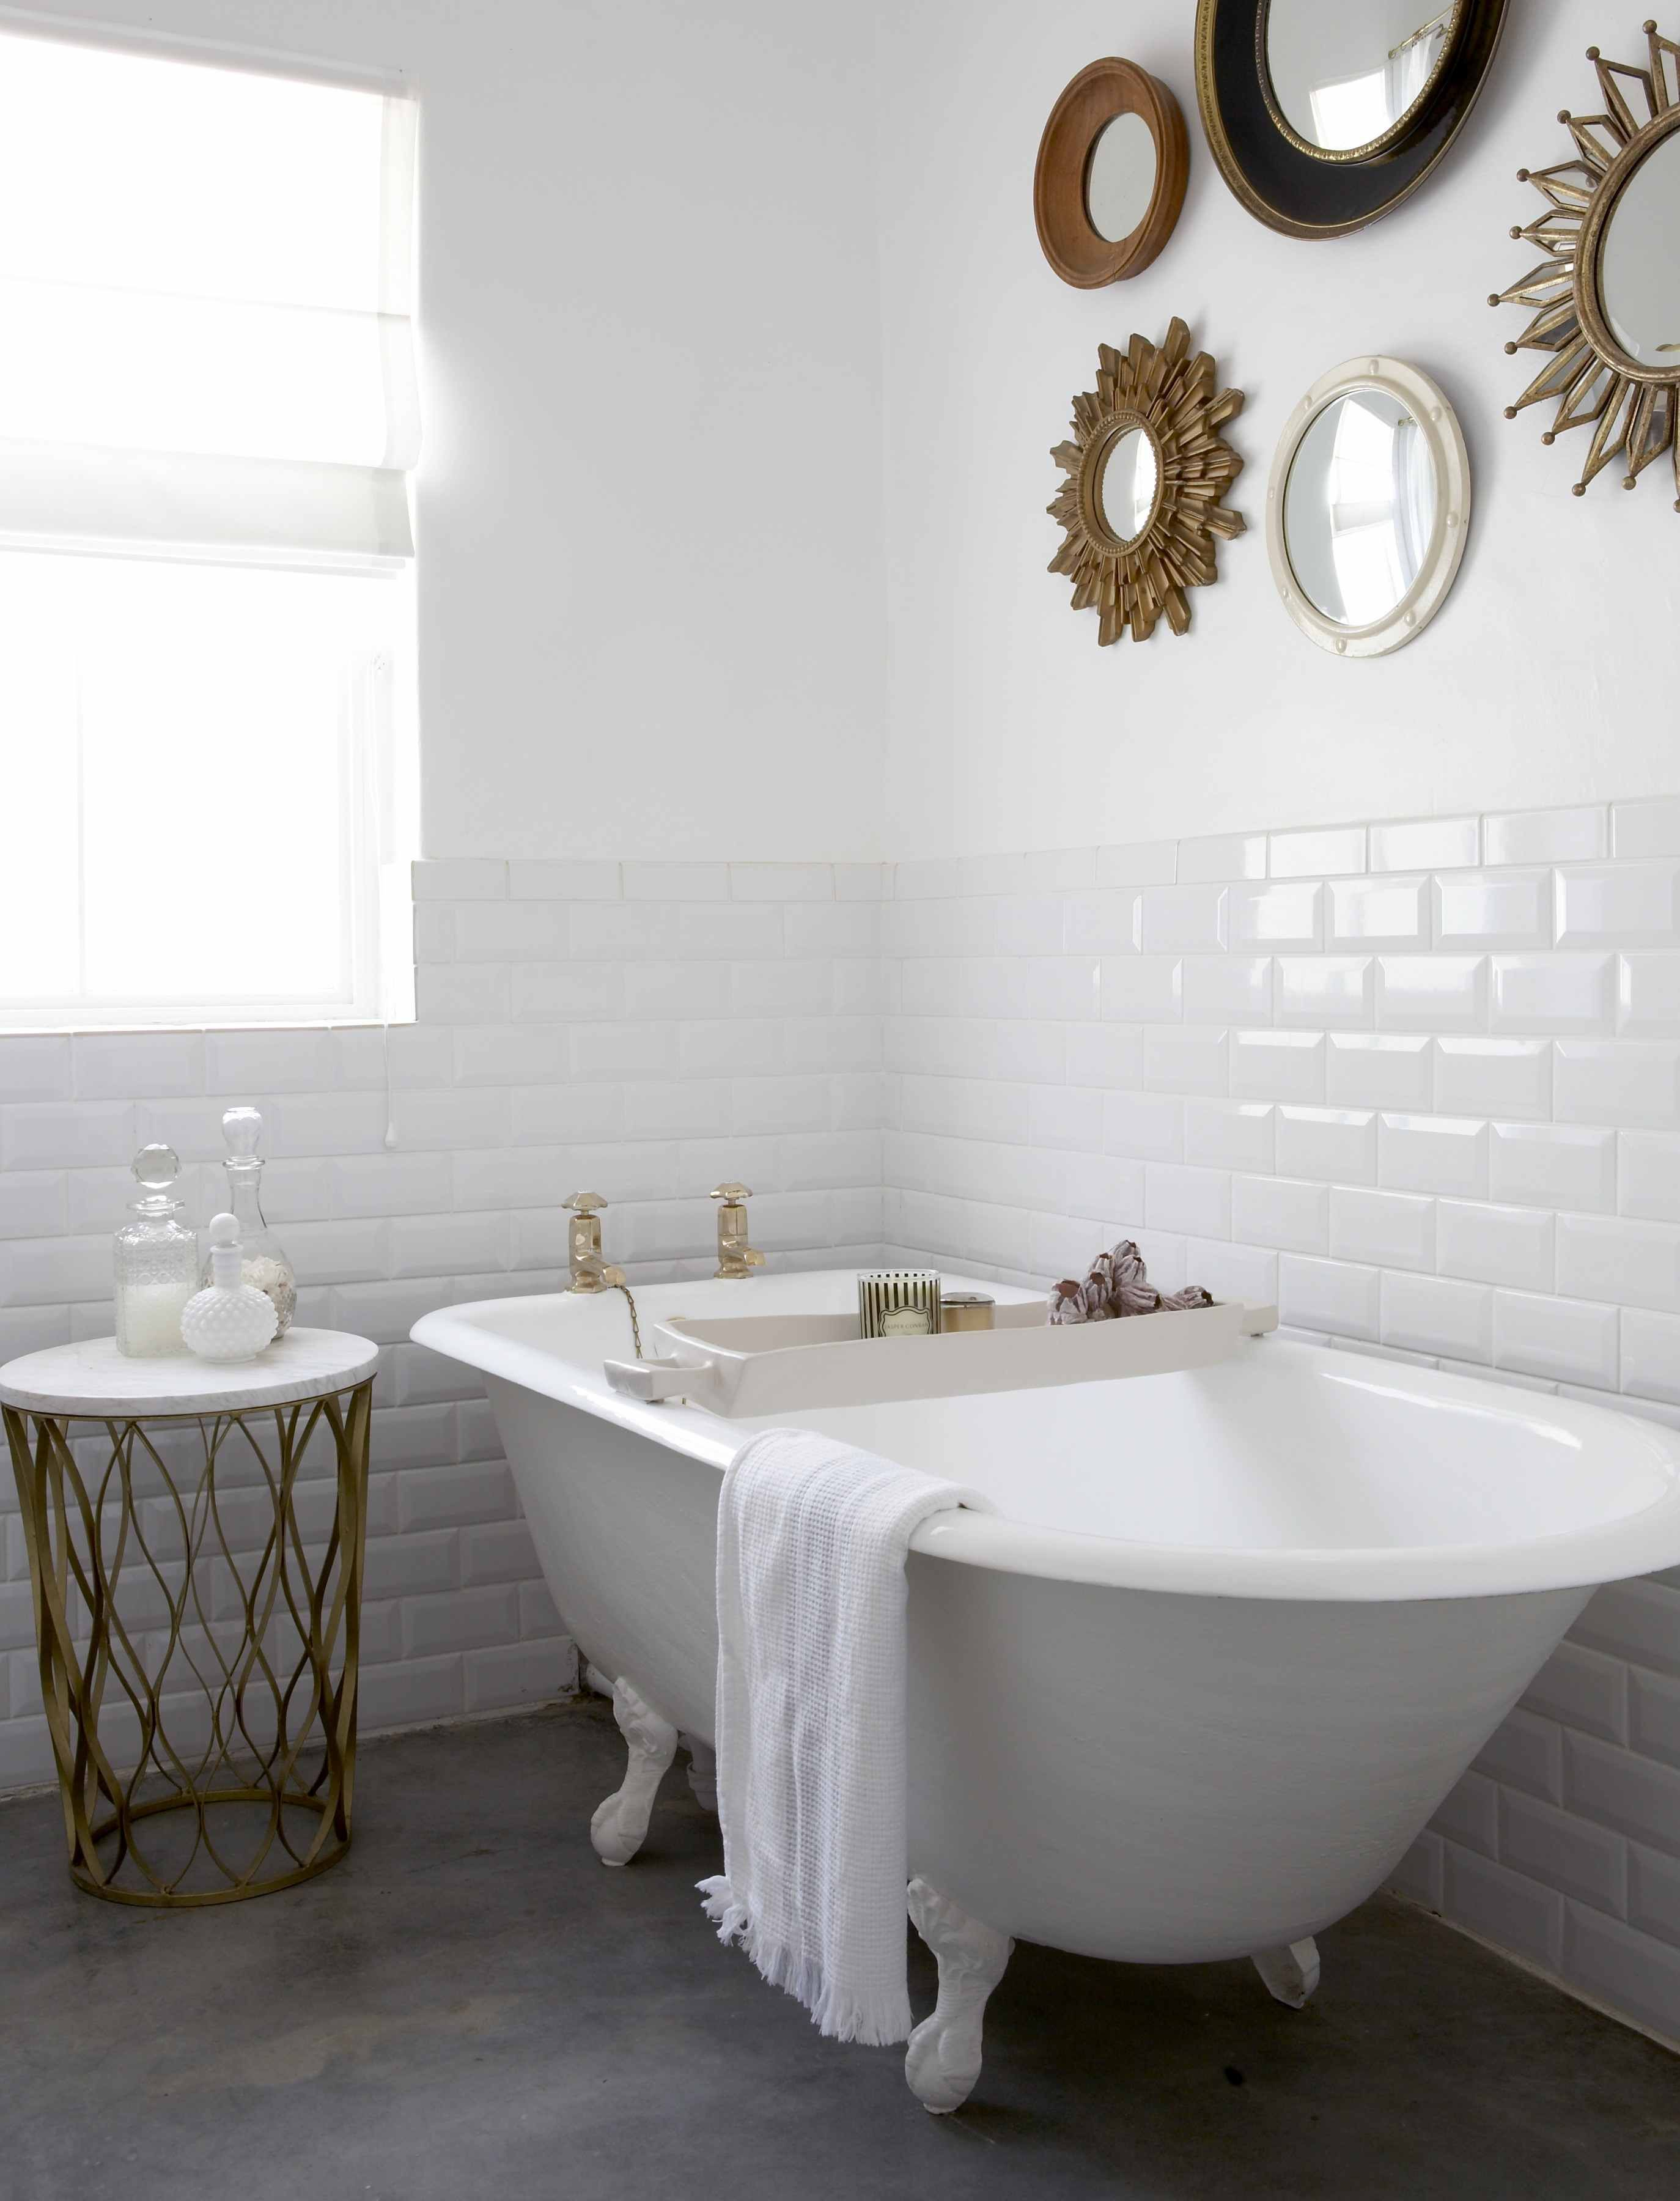 Bathroom with ball-and-claw bath. Collection of circular mirrors ...